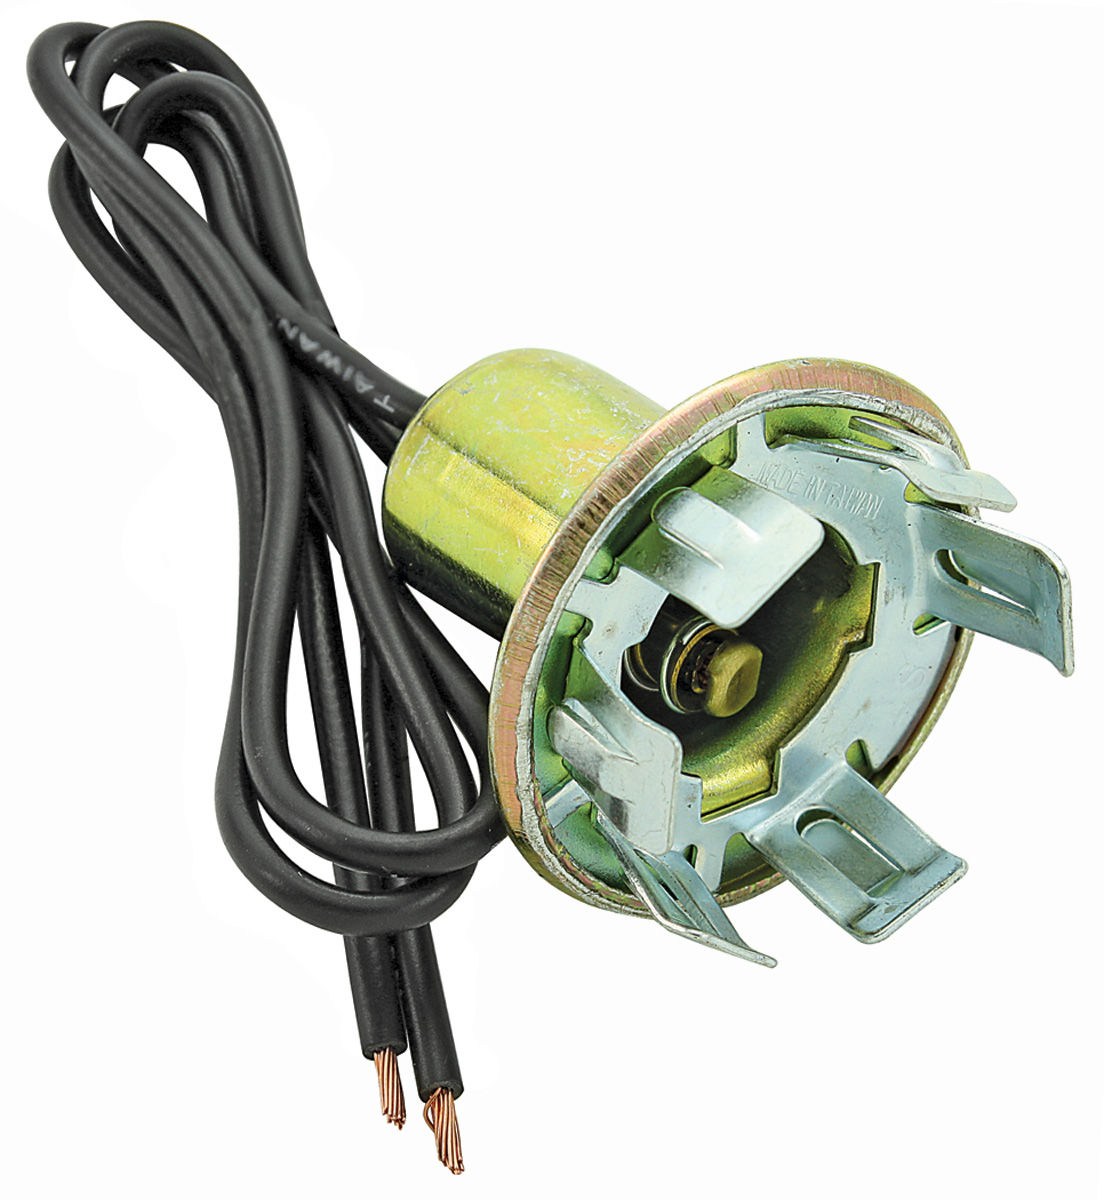 grand prix light socket, turn signal 2-wire, fits 1-1/  tap to enlarge